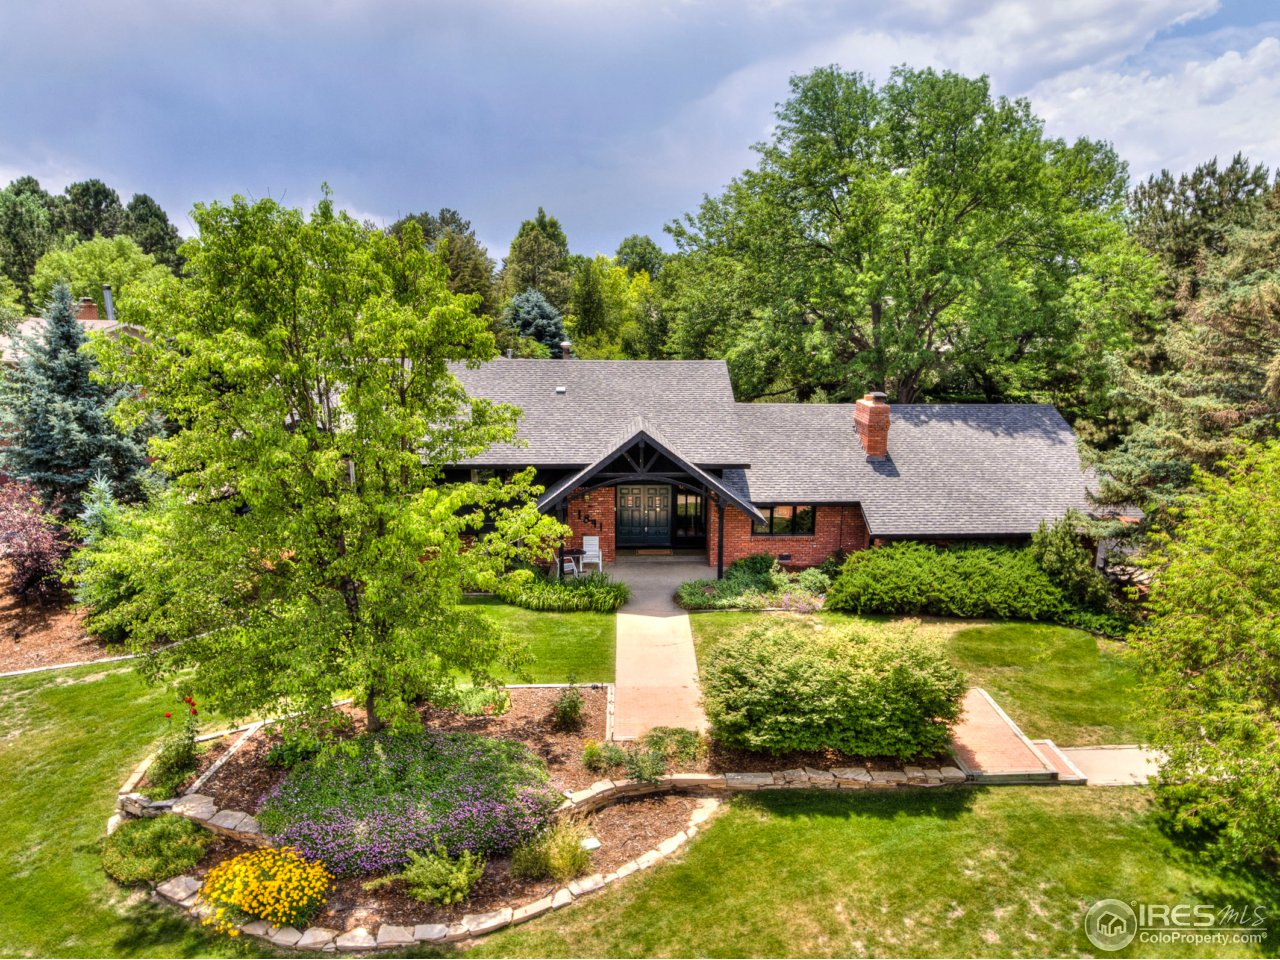 1841 Frontier Rd, Greeley, CO 80634